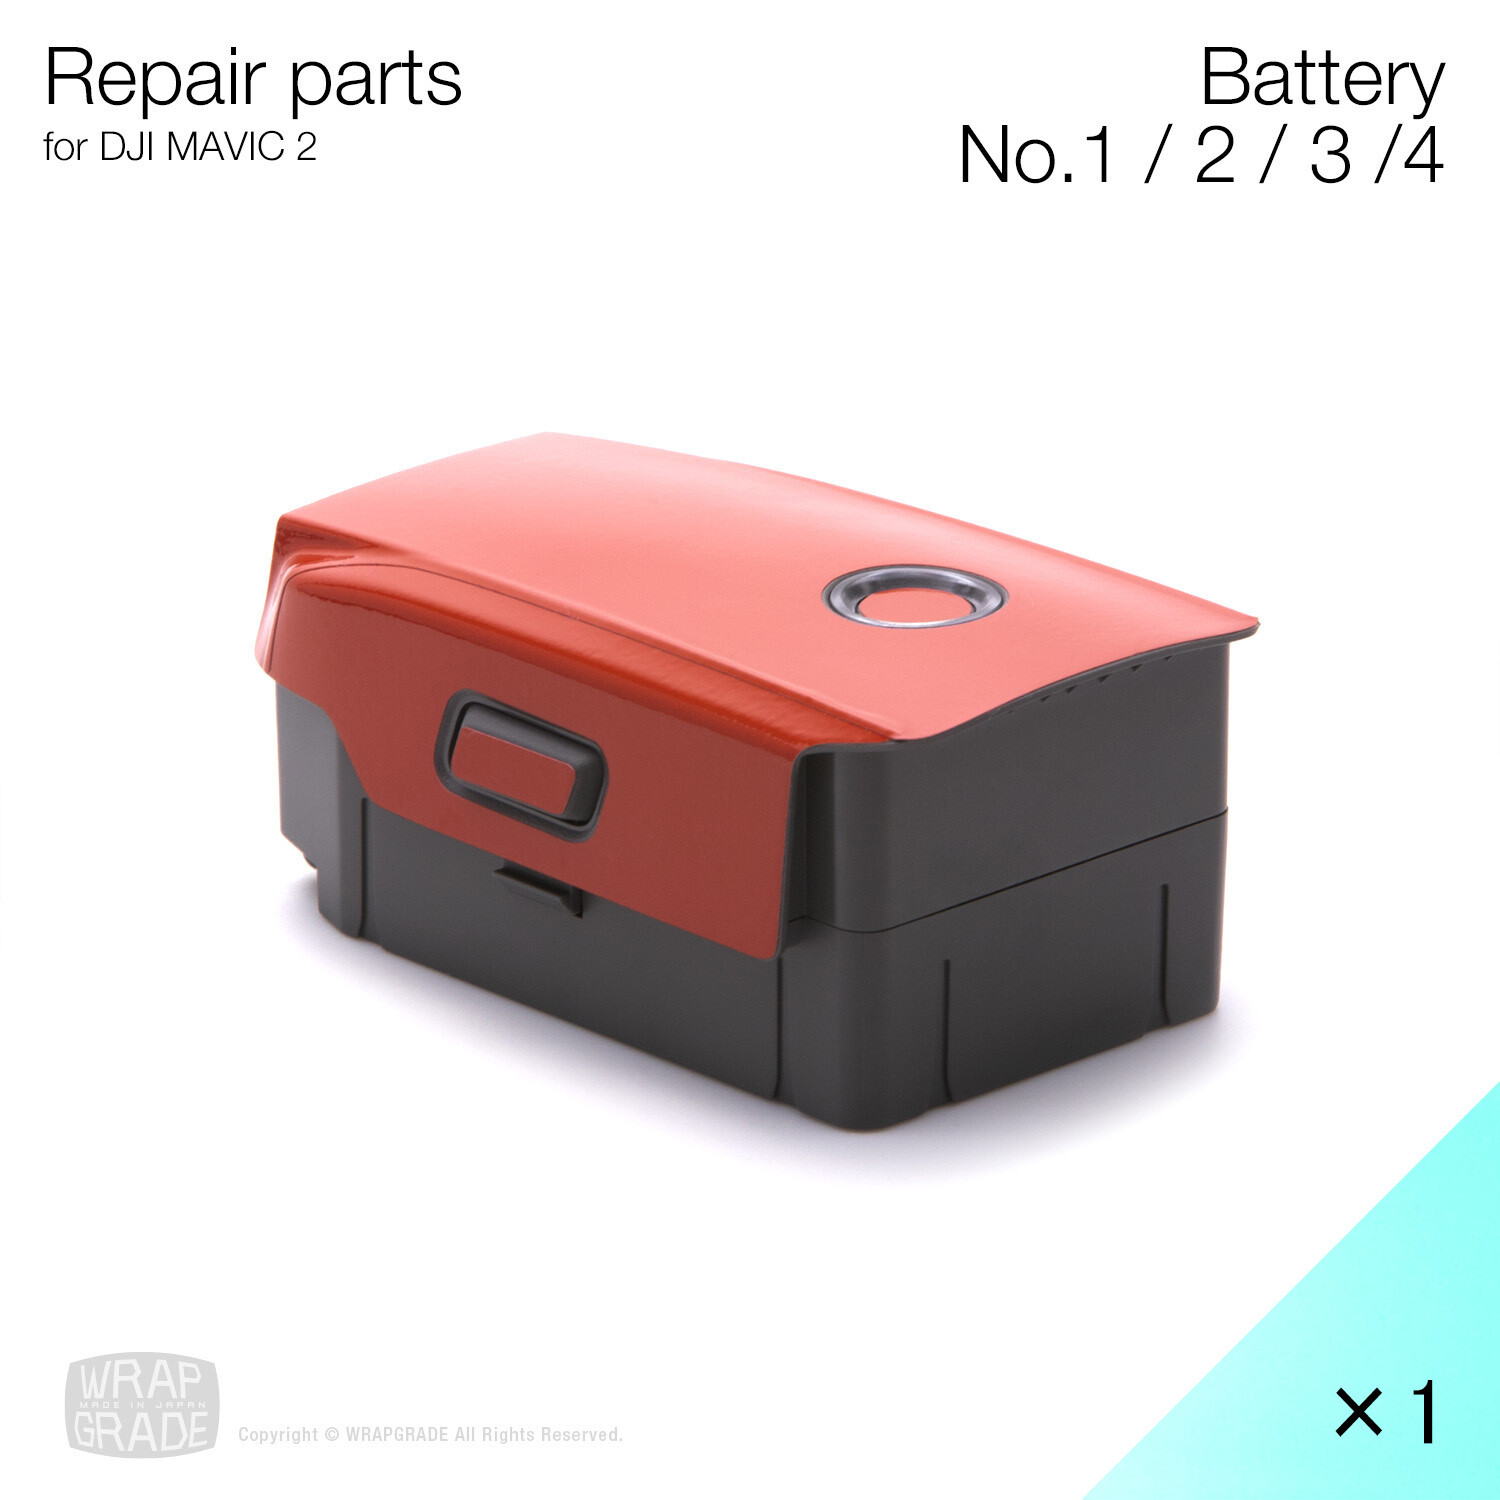 Repair parts for DJI MAVIC 2 [20colors]